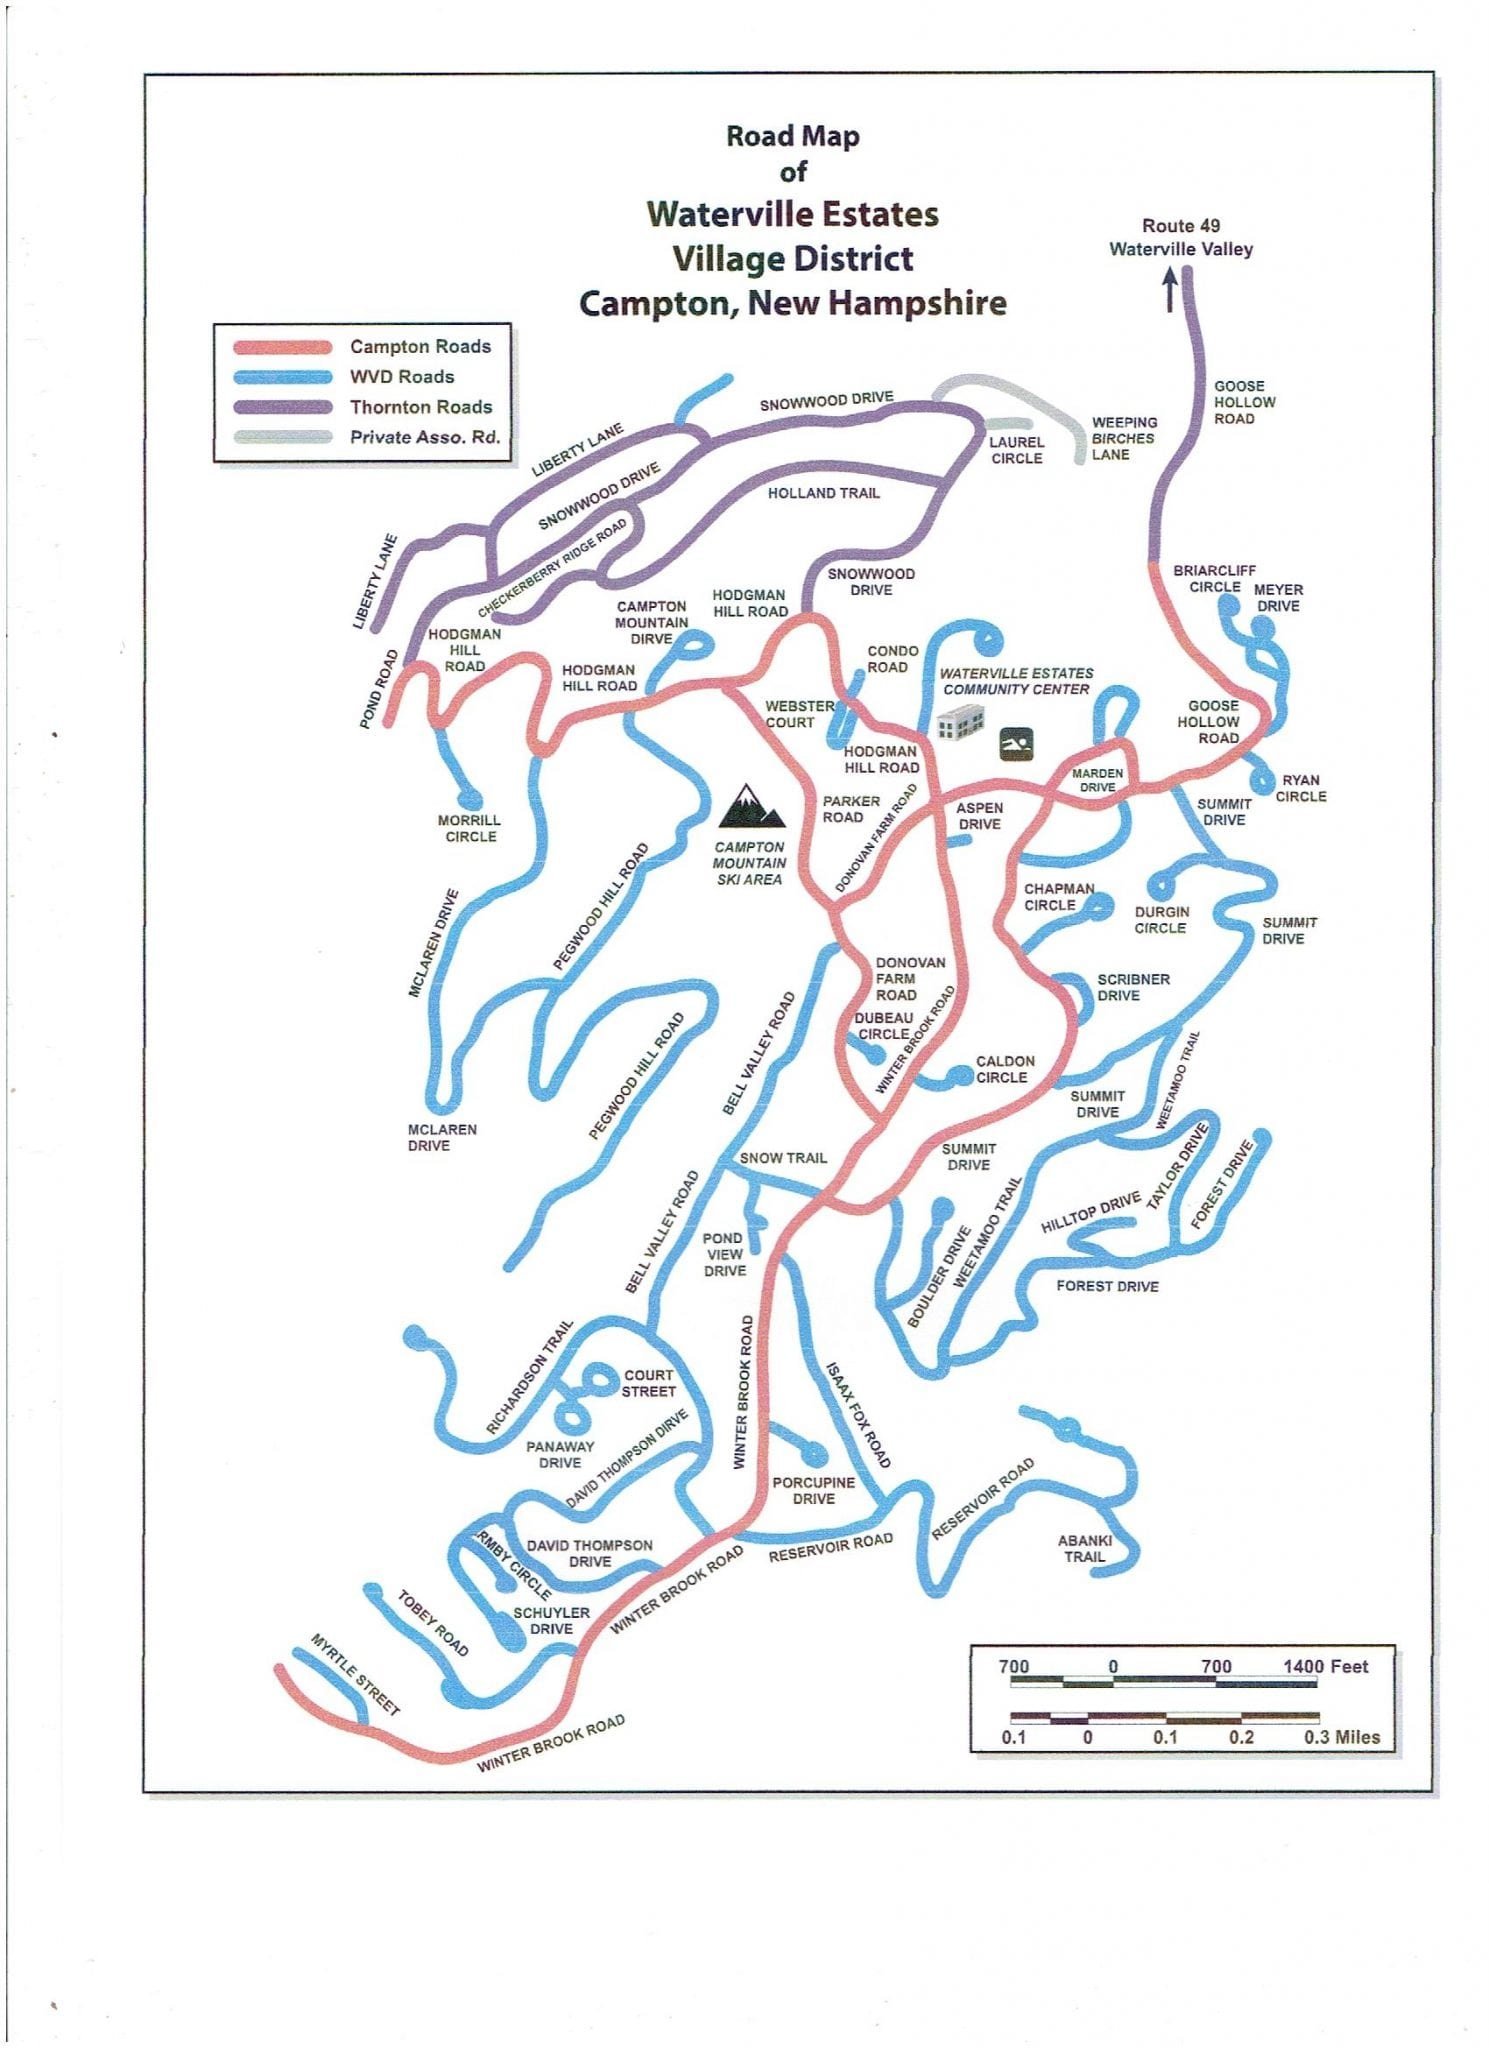 WEA Road Map Waterville Estates - Road map of nh